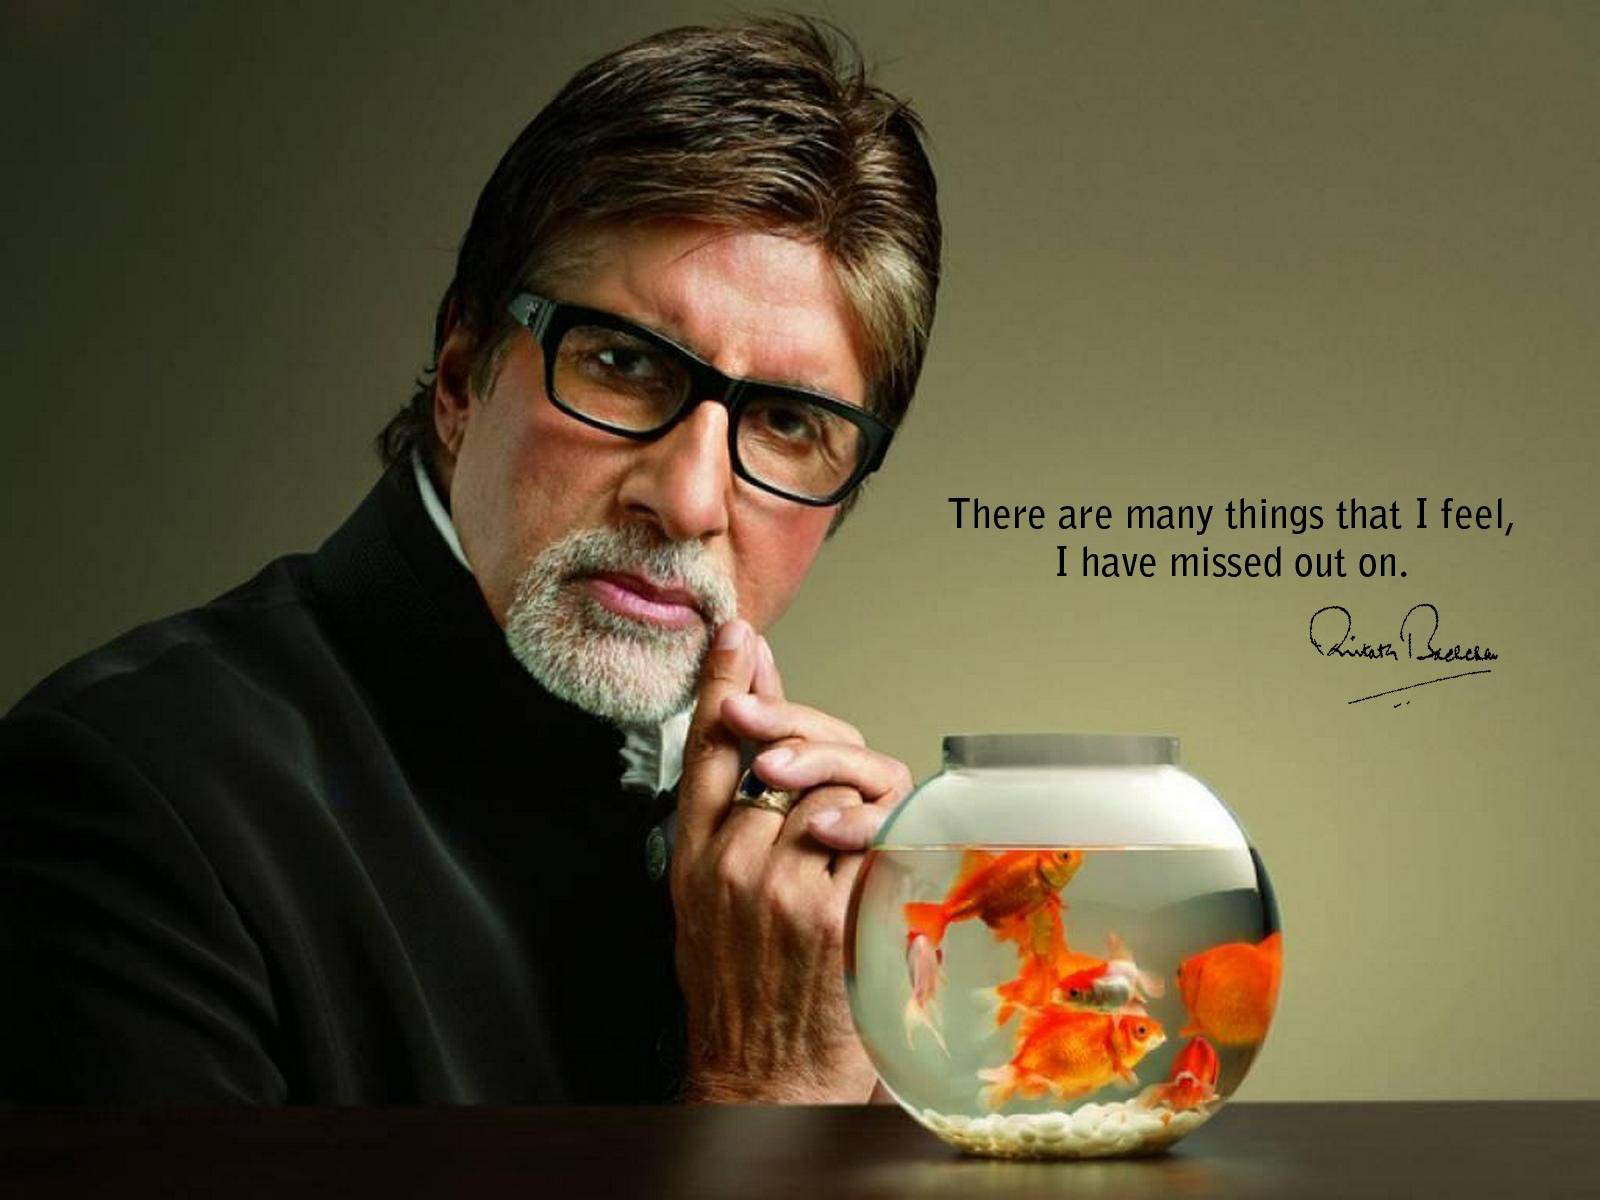 Amitabh Bachchan's quote #1